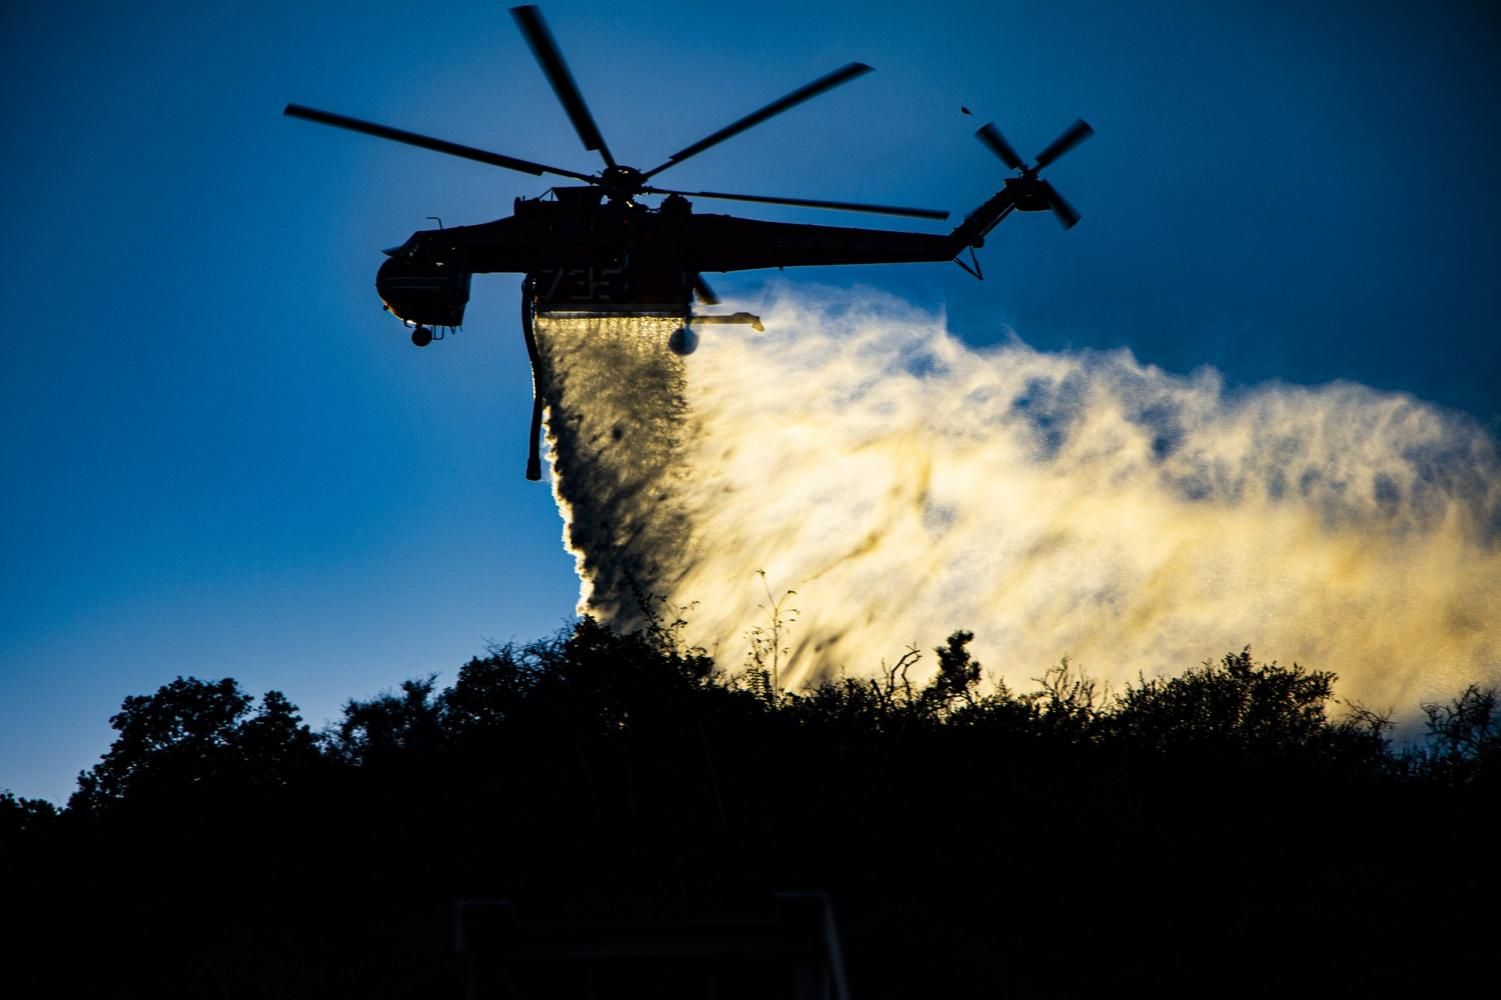 A Cal-Fire Skycrane makes a water drop on the Getty Fire near the I-405 around 5:30 p.m. on Oct. 28. Photo credit: Tim Strong